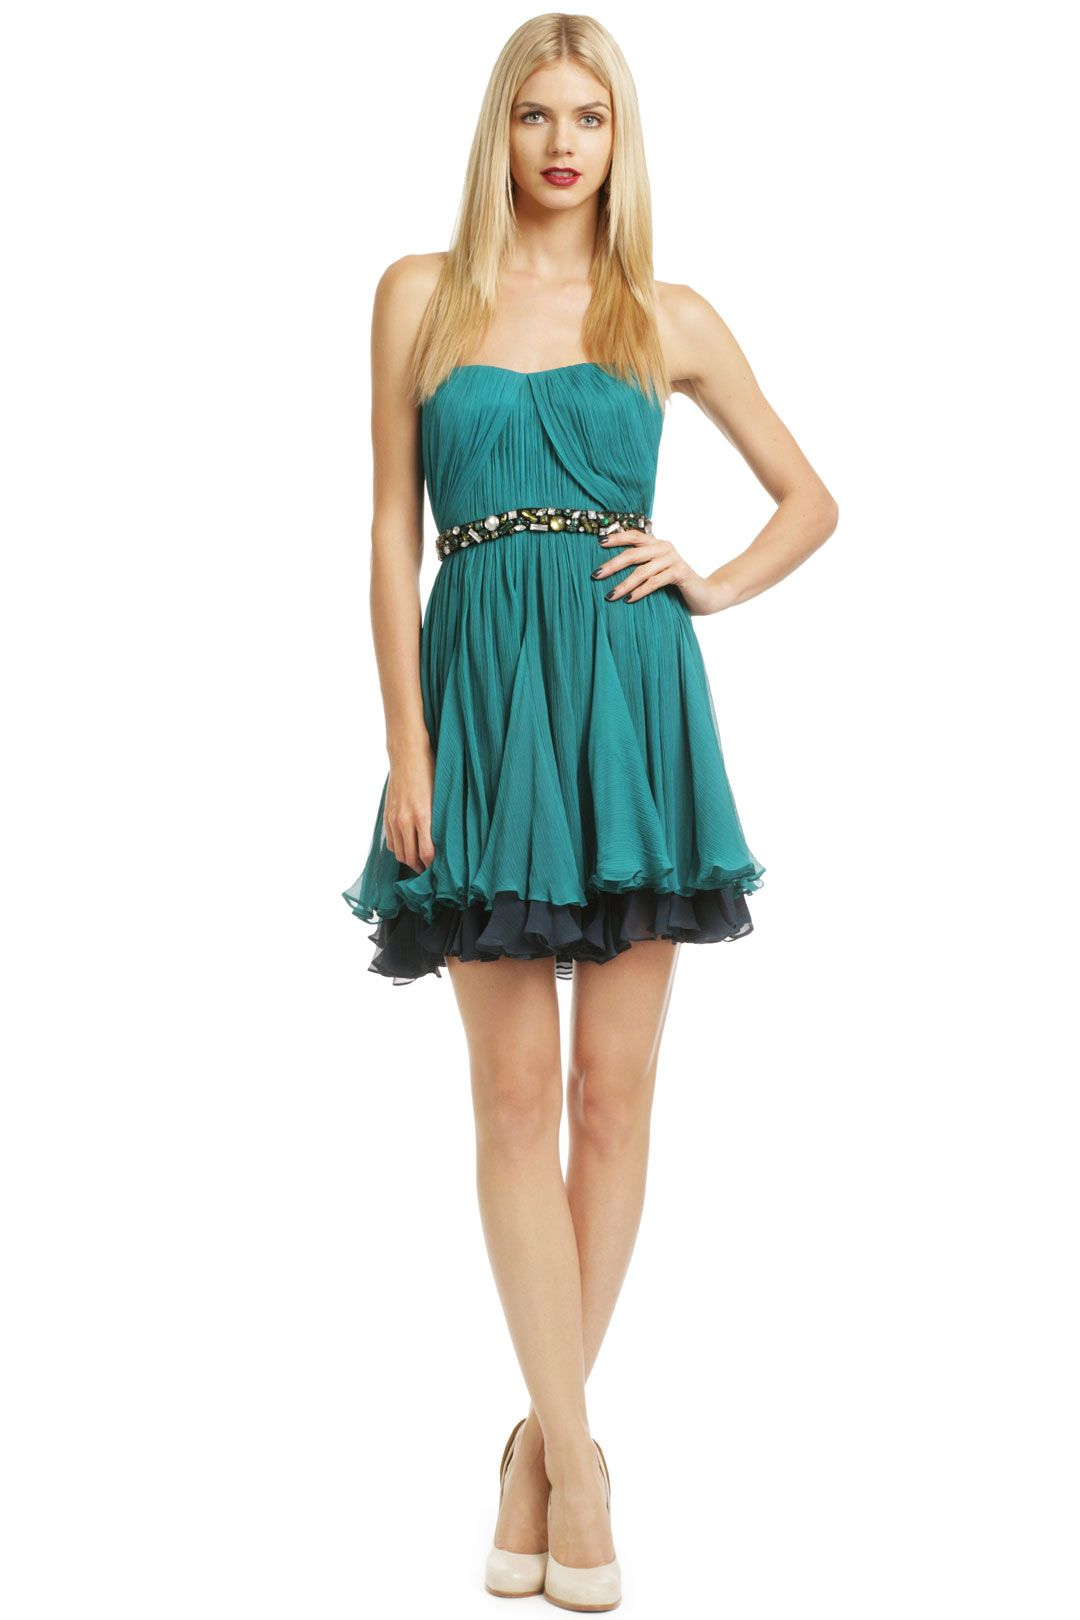 Dance with me dress dancing turquoise shorts and short formal dresses